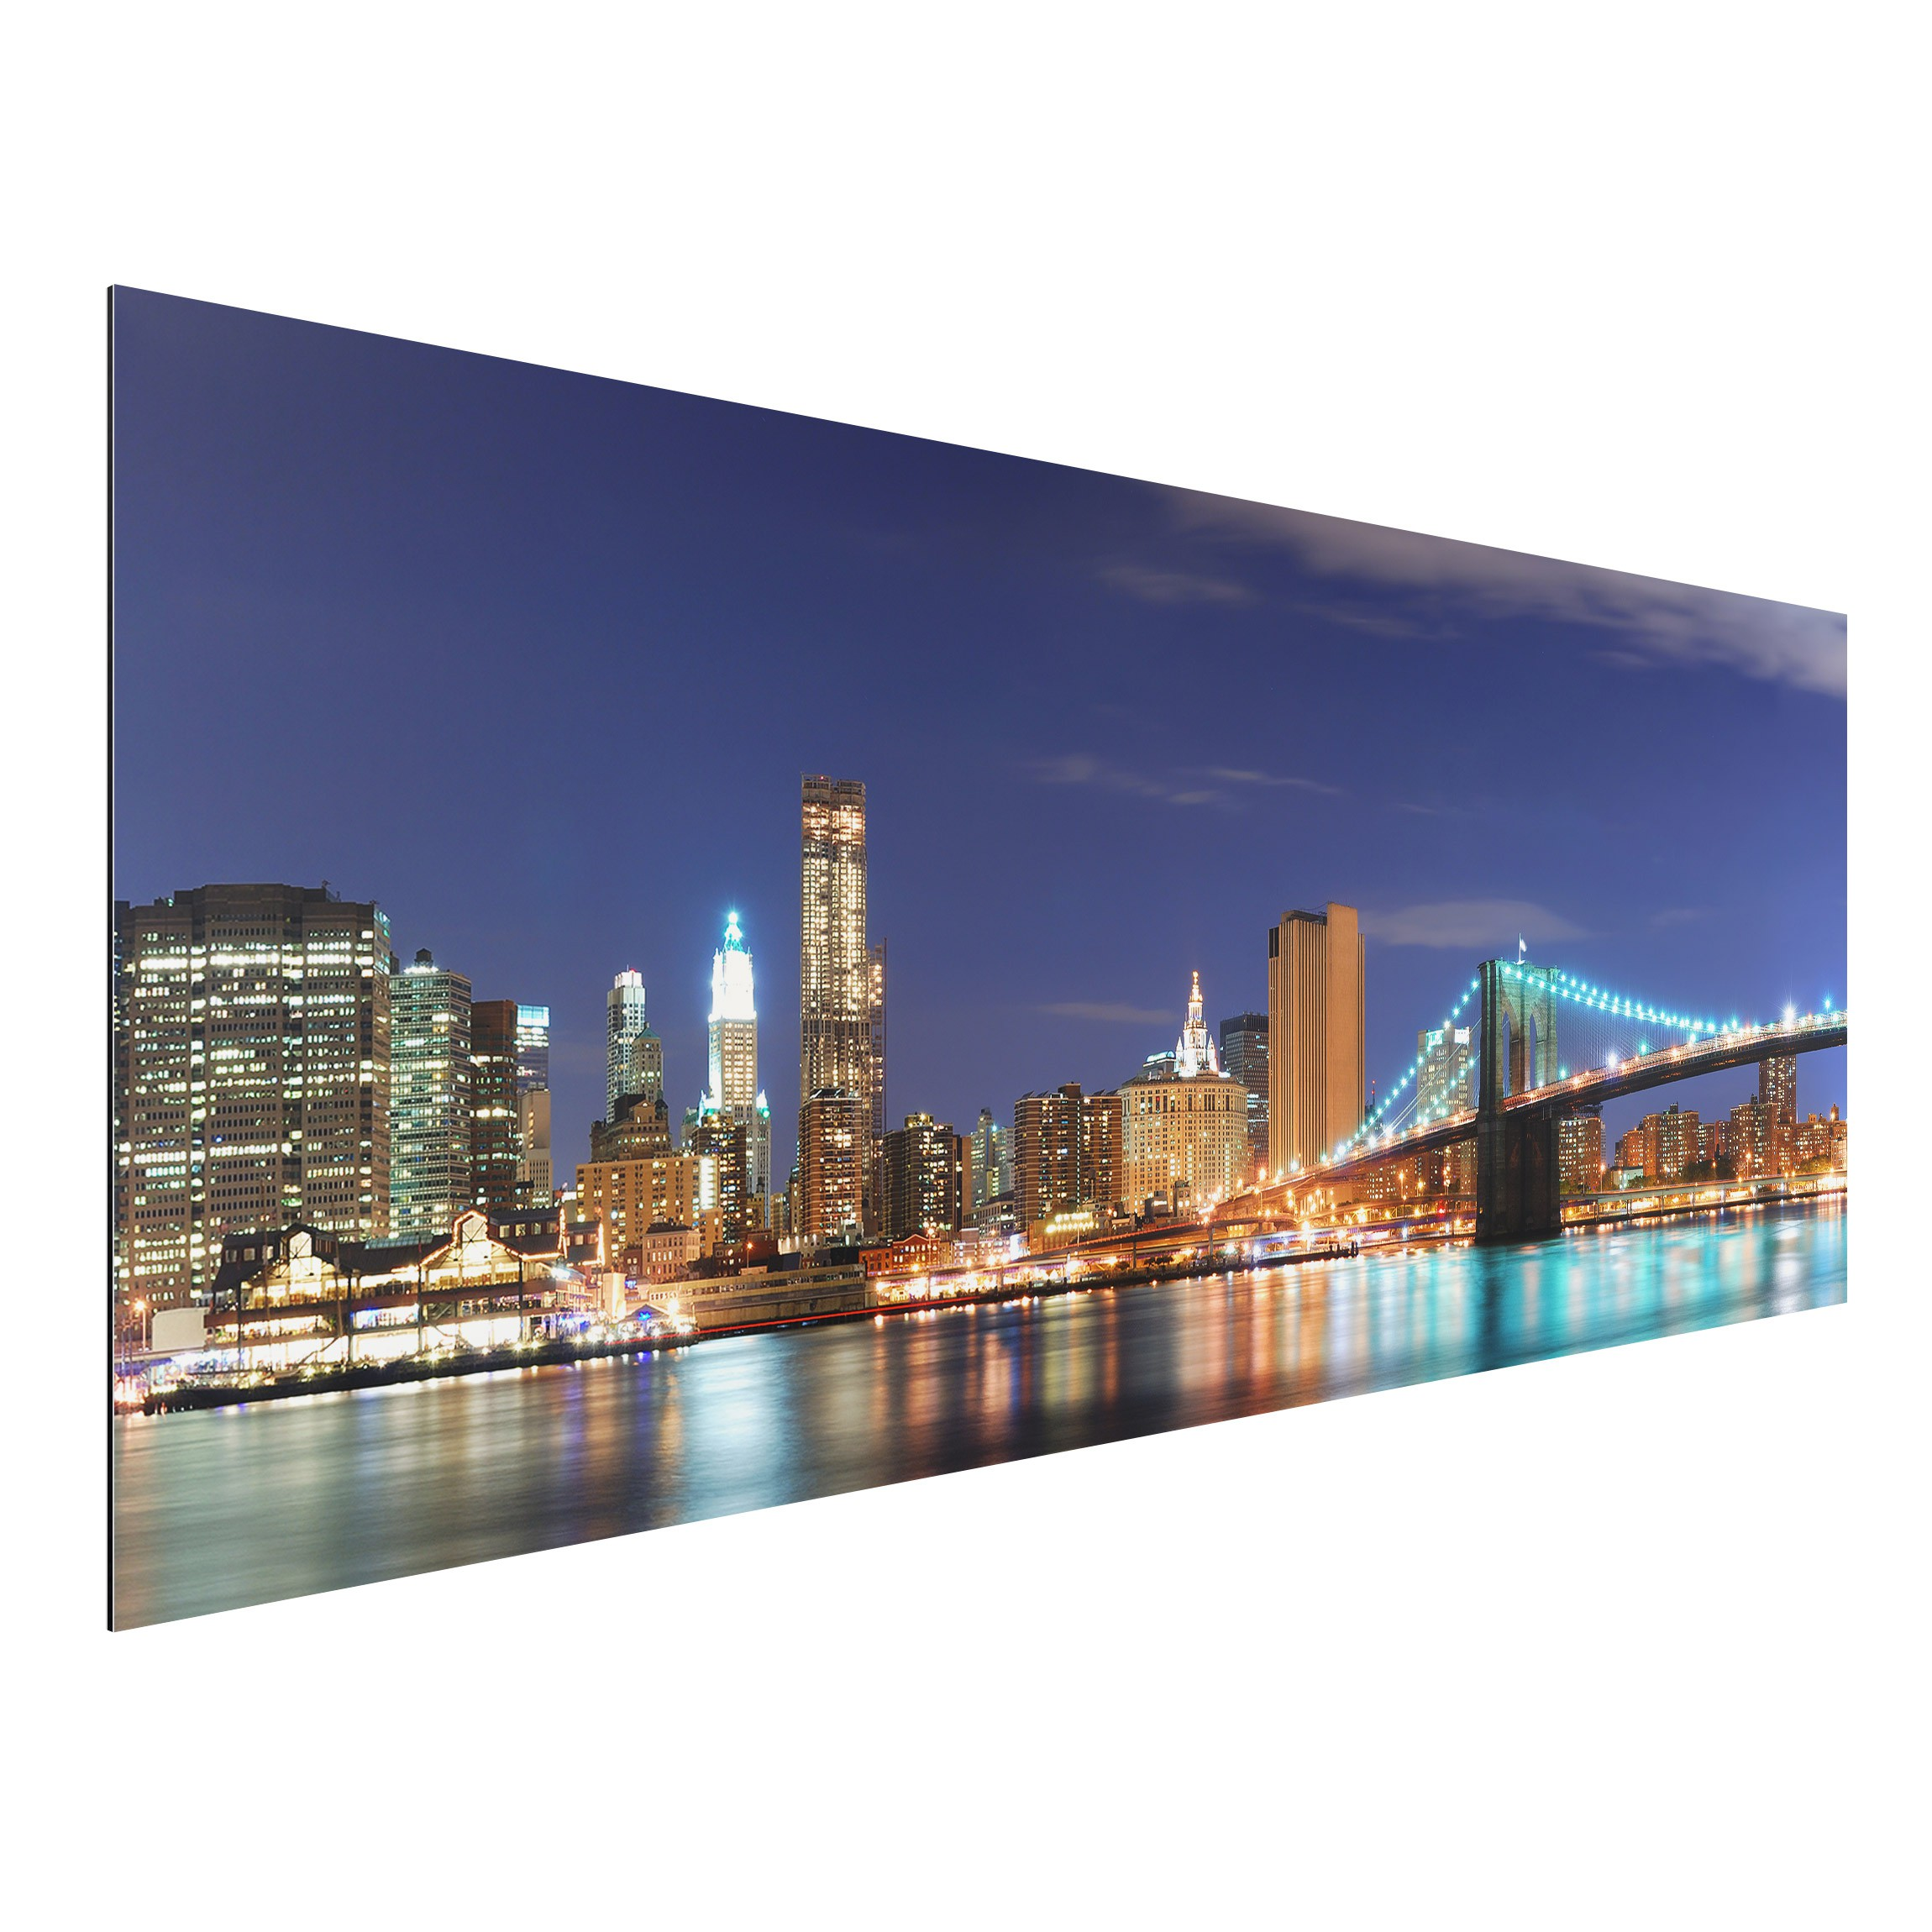 Aluminium print wandbild manhattan in new york city - Wandbild new york ...